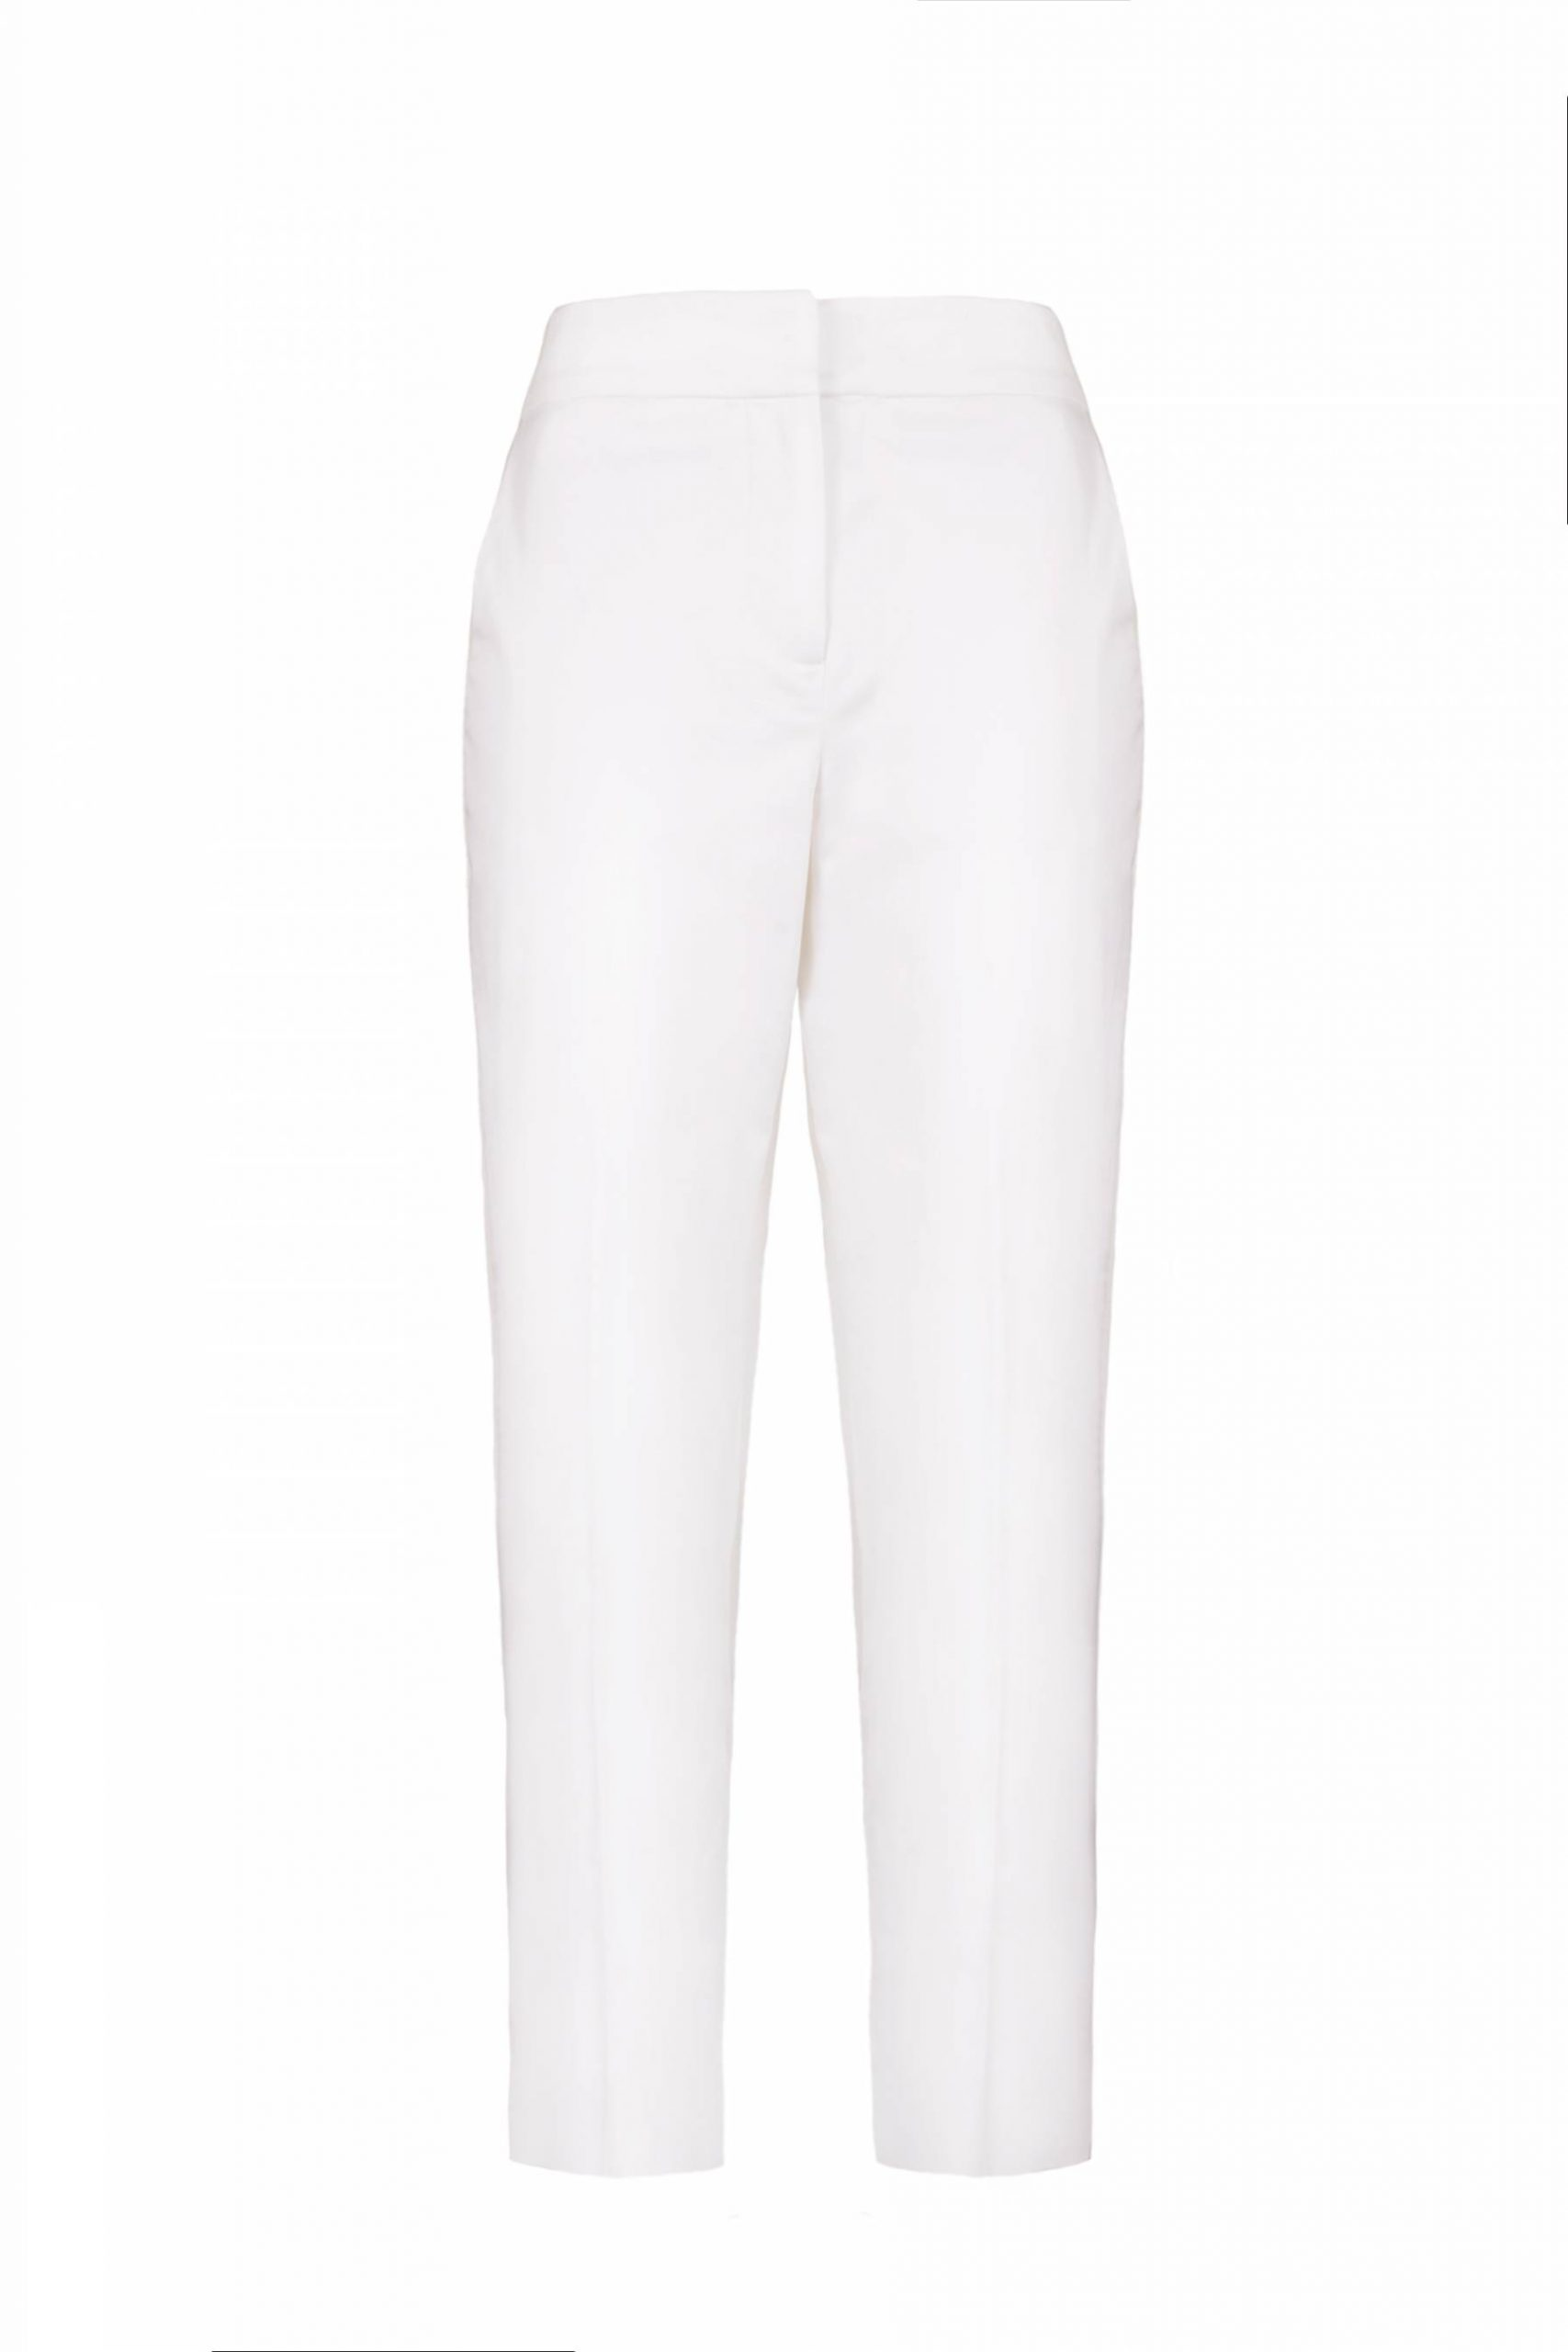 White cotton summer trousers